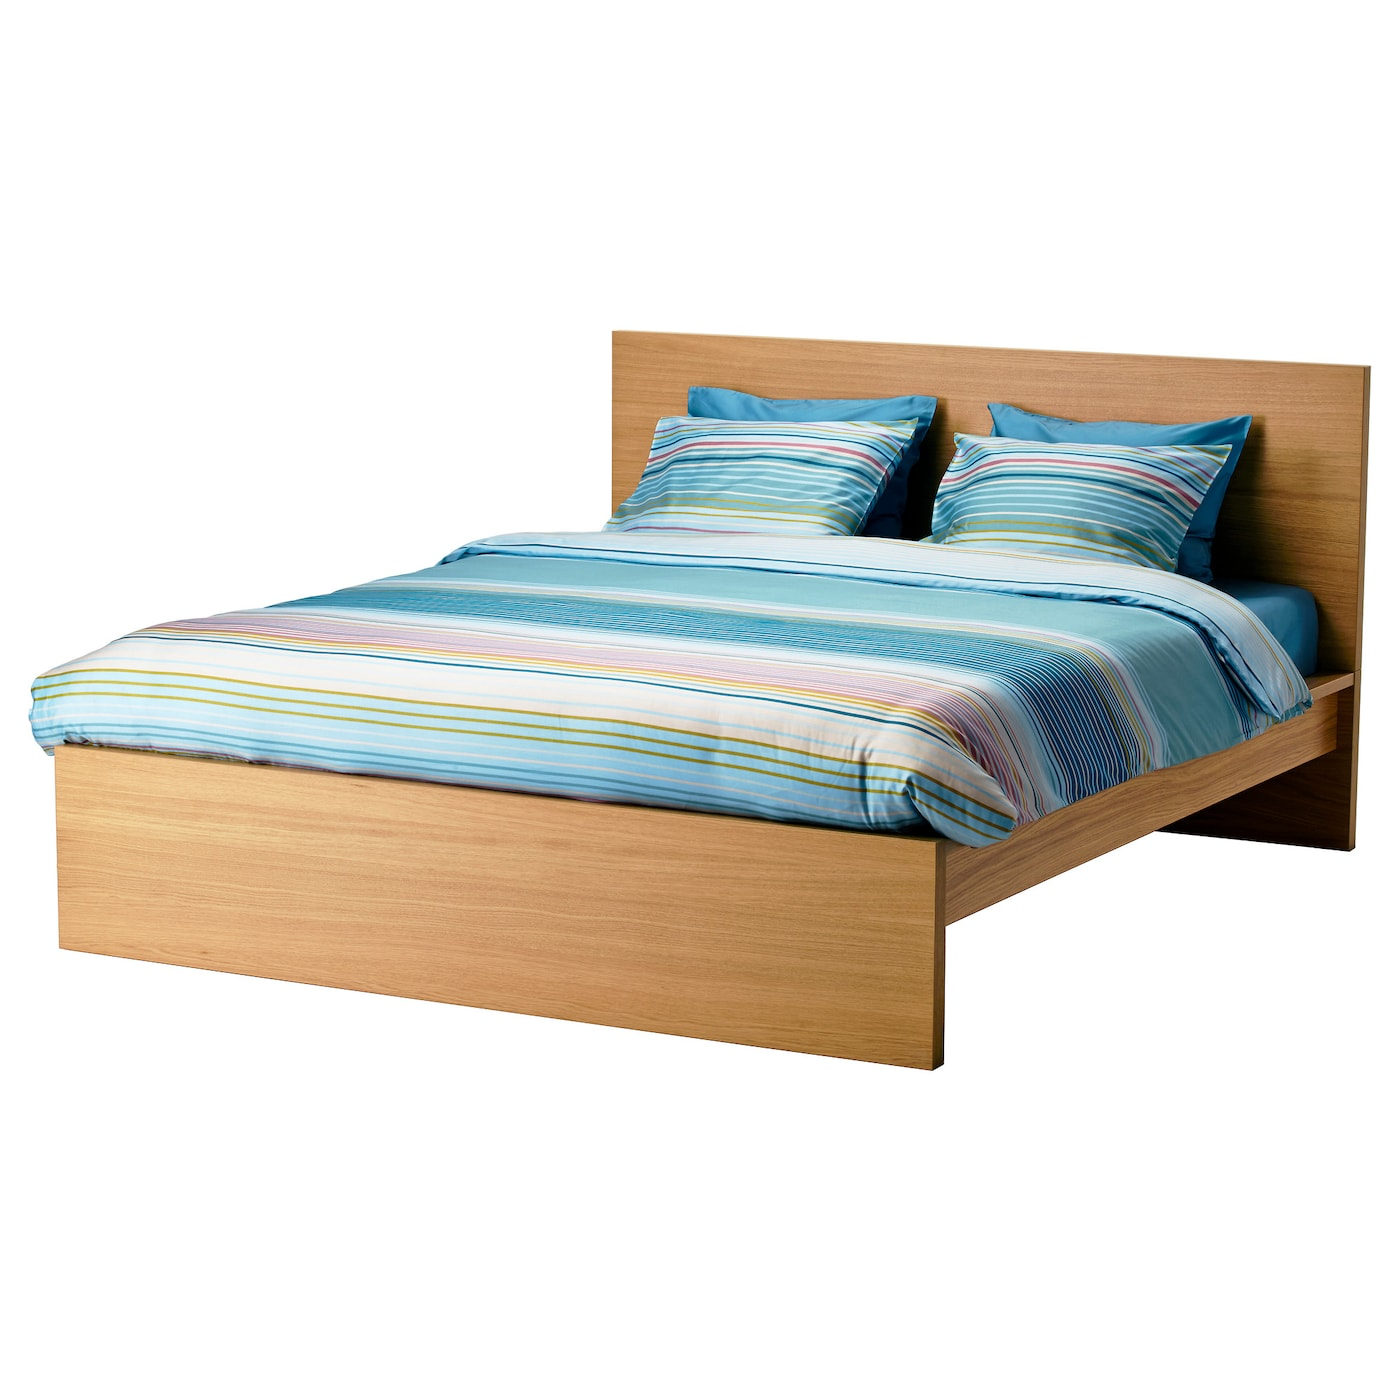 ikea malm bed frame high real wood veneer will make this bed age gracefully - Bed